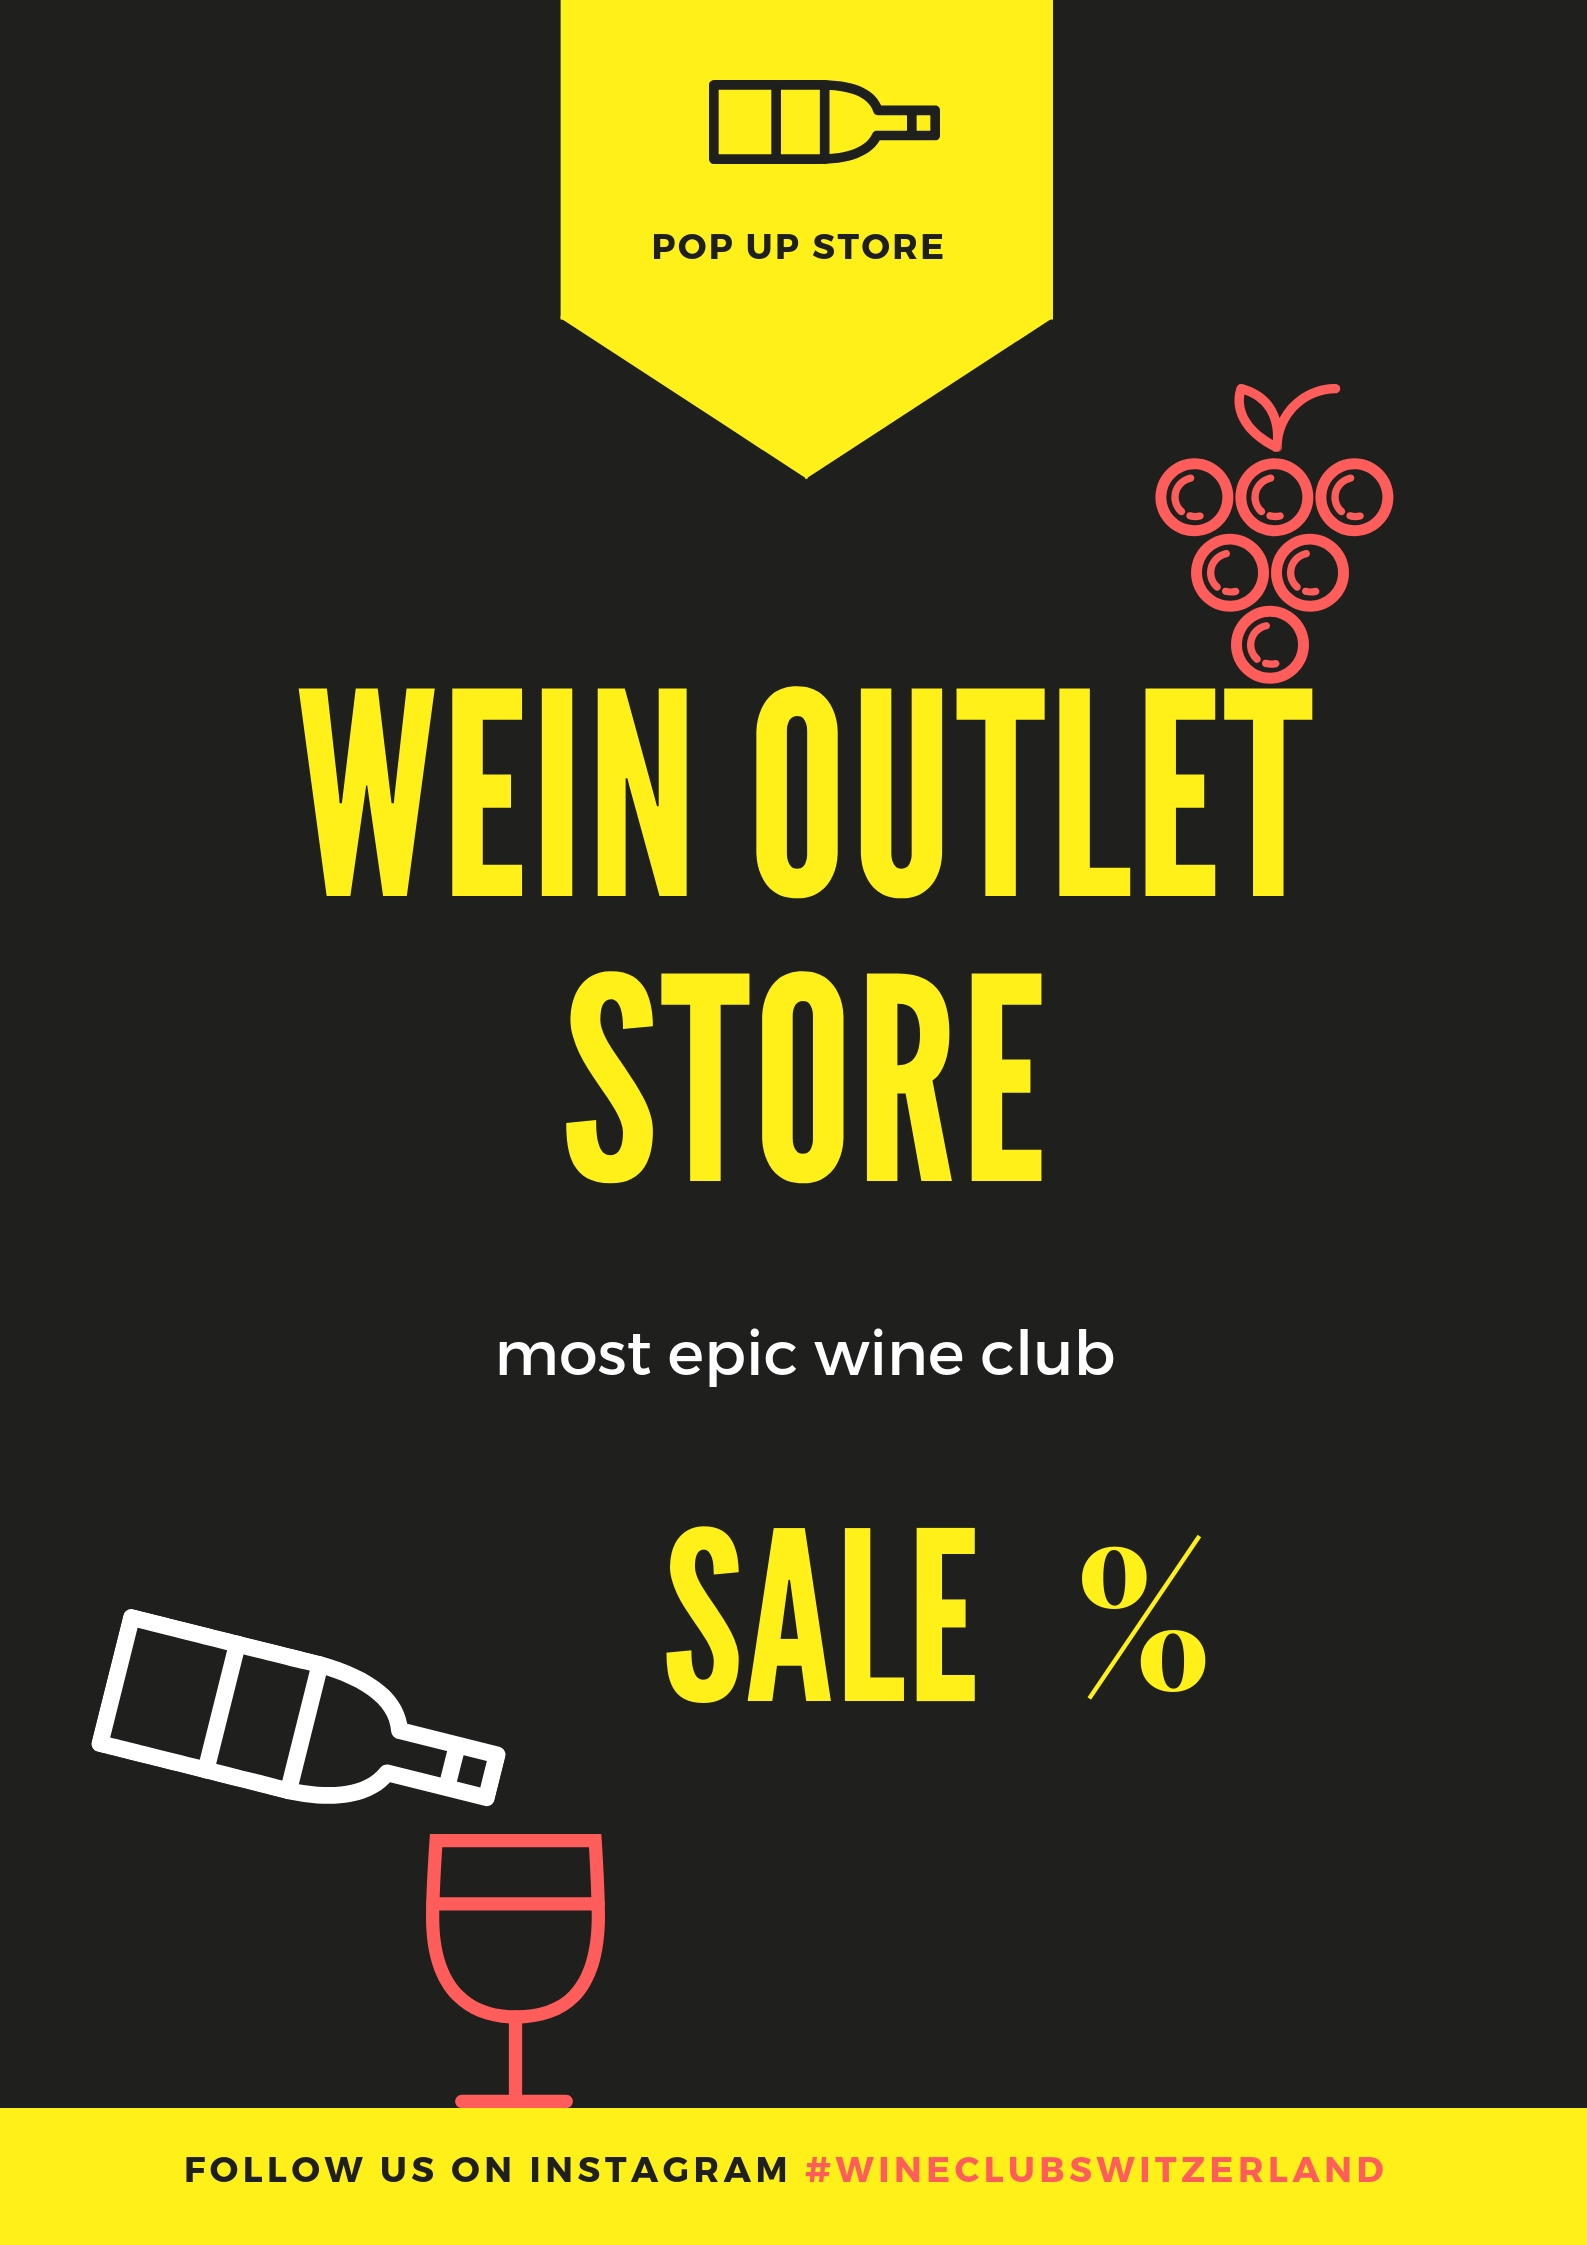 most epic wine club - we just open our POP UP Store in Switzerland visit us and grab your best deal!